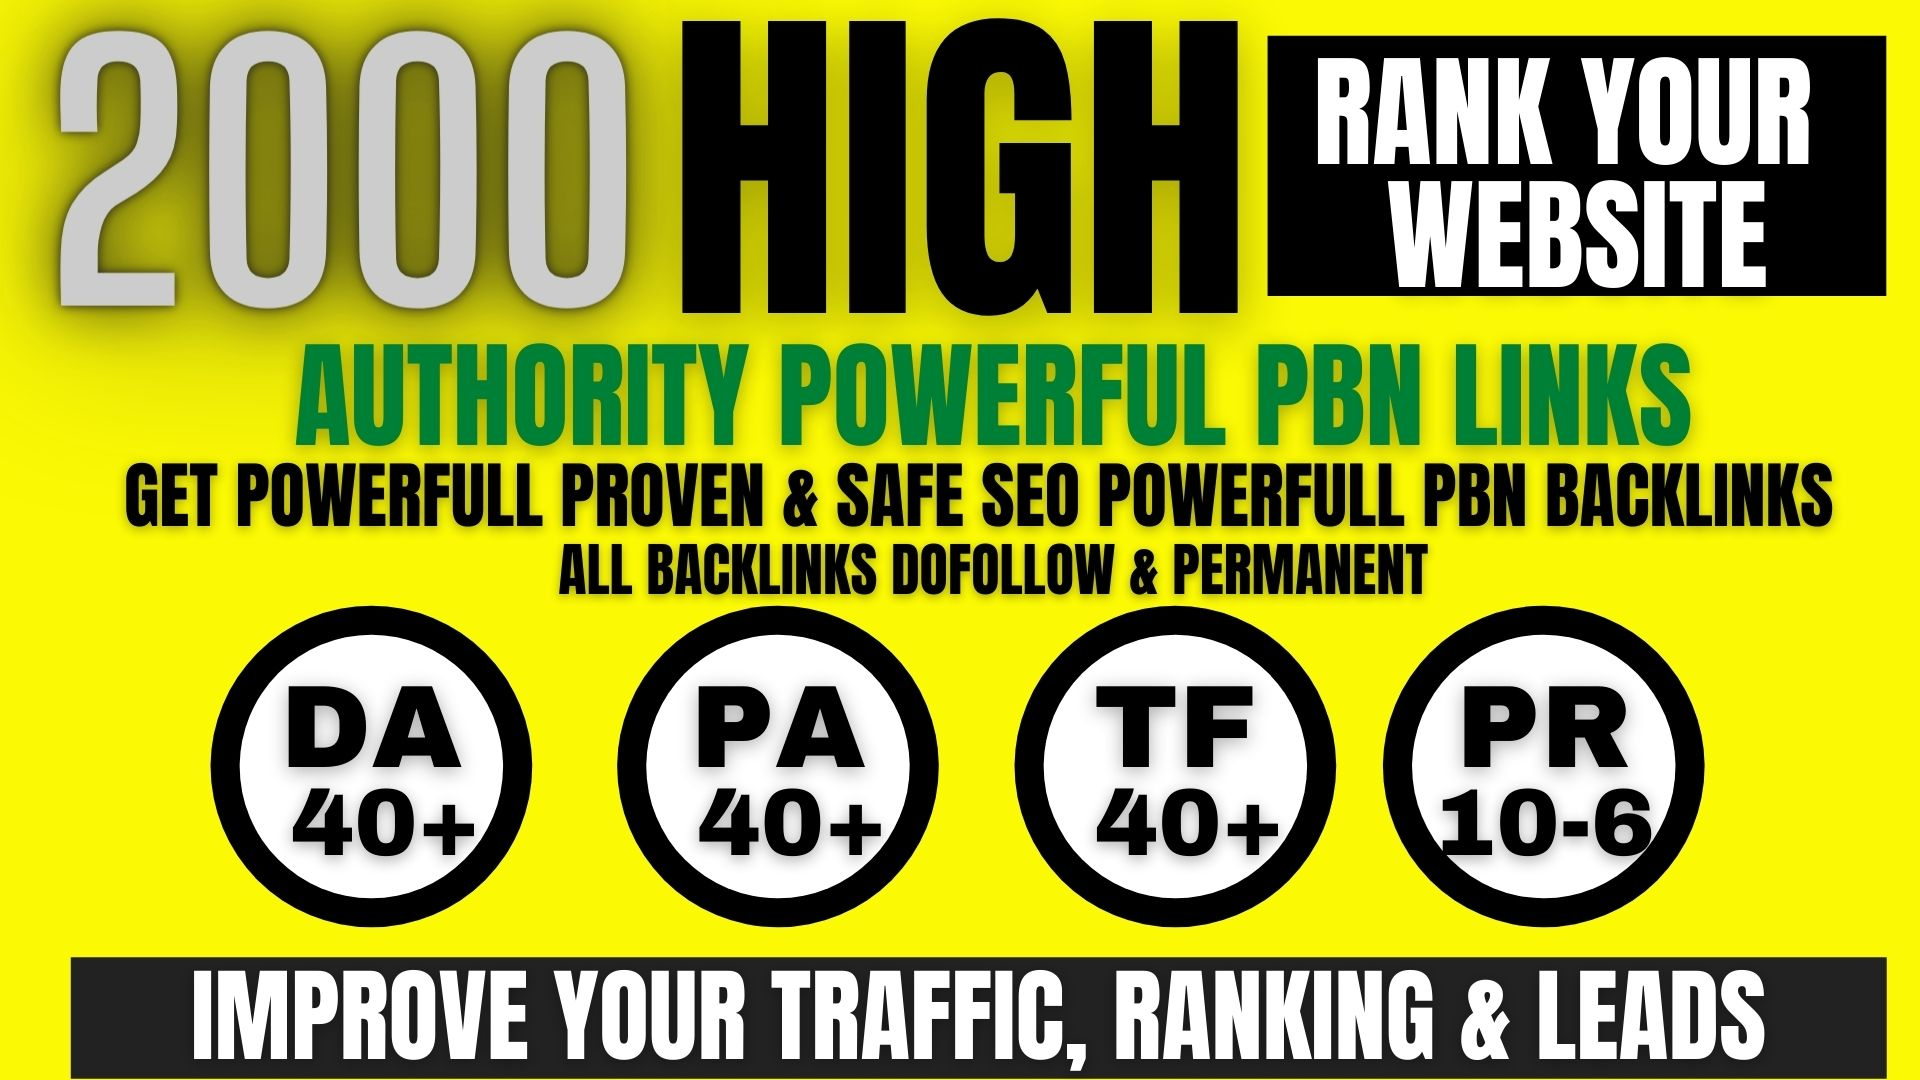 get premium permanent 2000 Pbn Backlink DA40+PA40+PR10 to 6 dofollow unique site